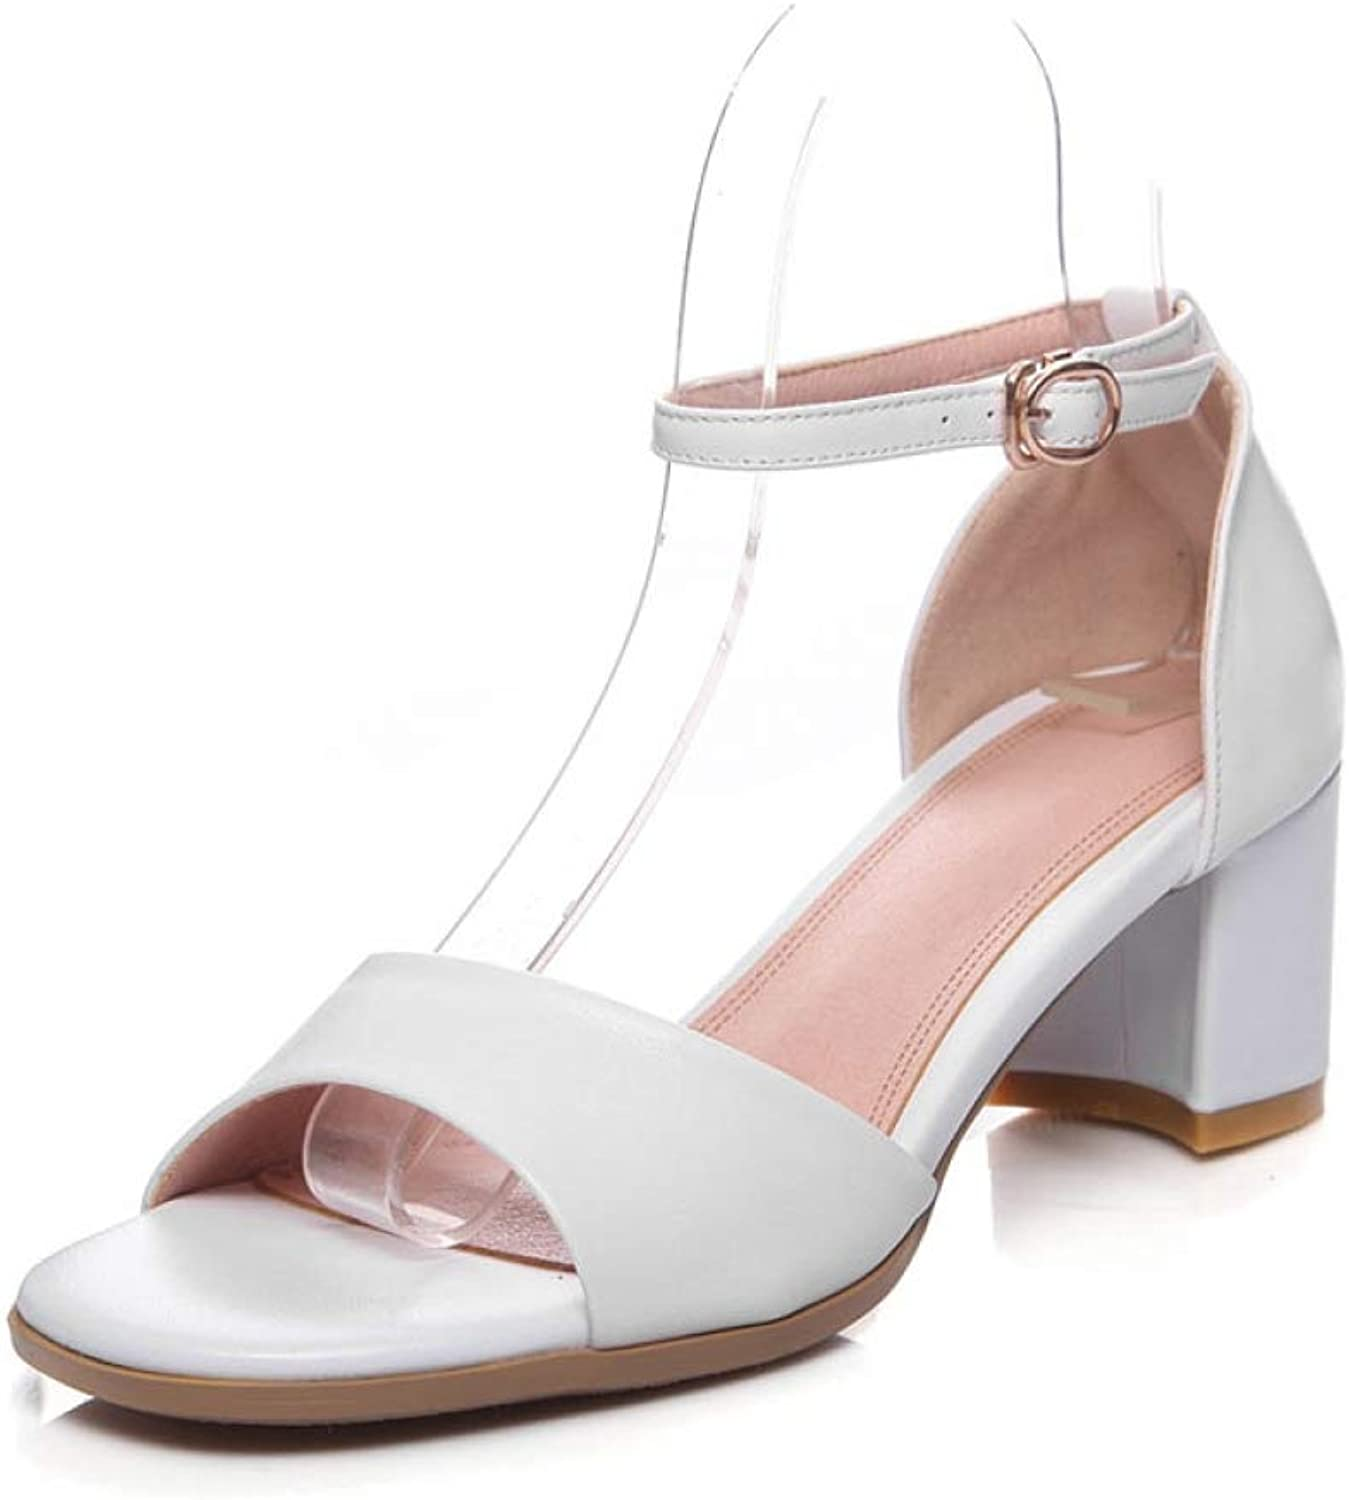 T-JULY Sandals for Women Genuine Leather shoes Summer Sexy High Heels Open Toe Party shoes with Buckle Ankle Strap